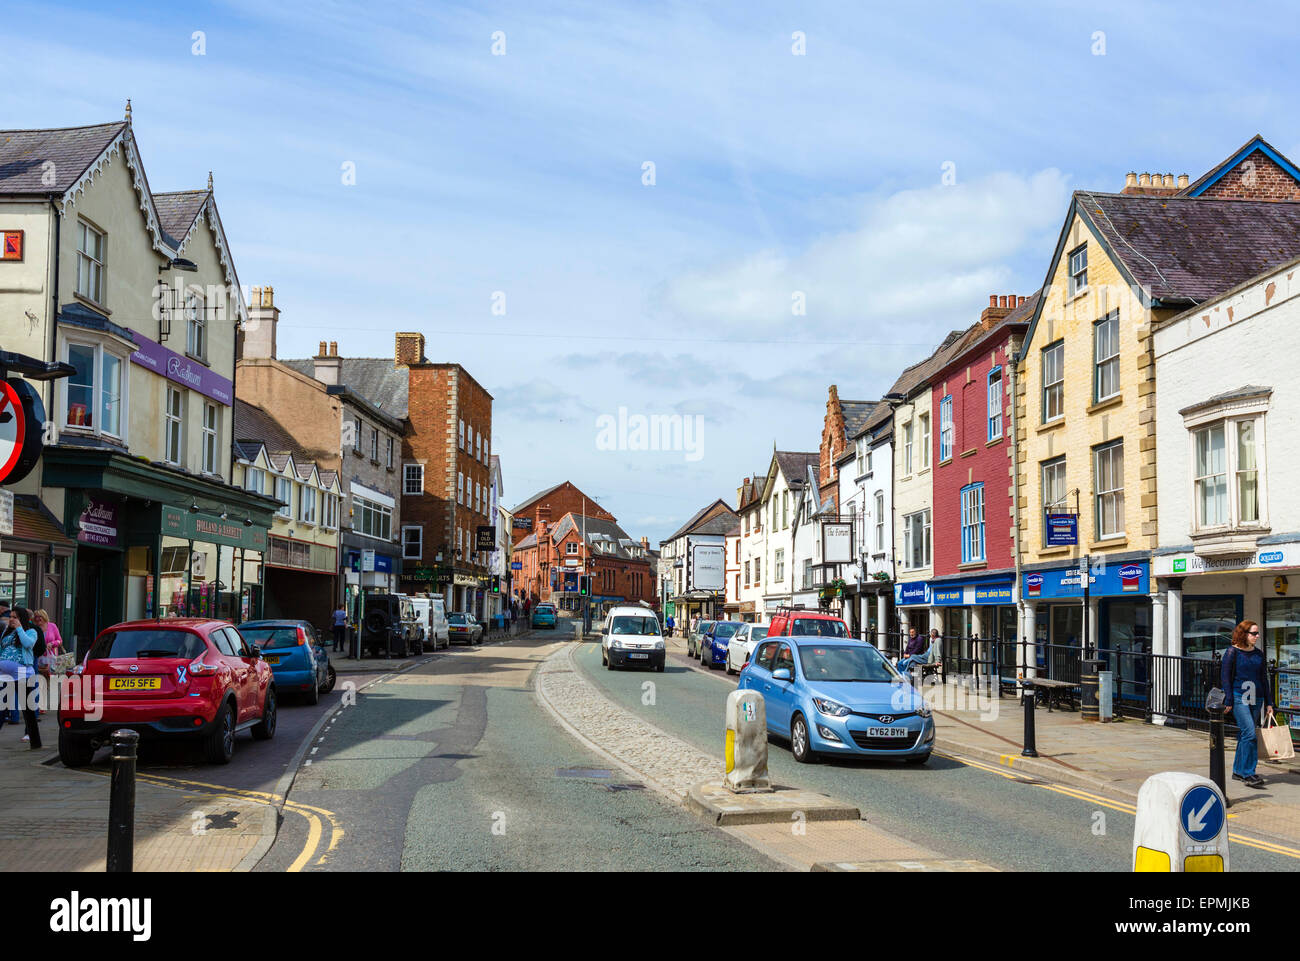 High Street in Denbigh, Denbighshire, Wales, UK - Stock Image